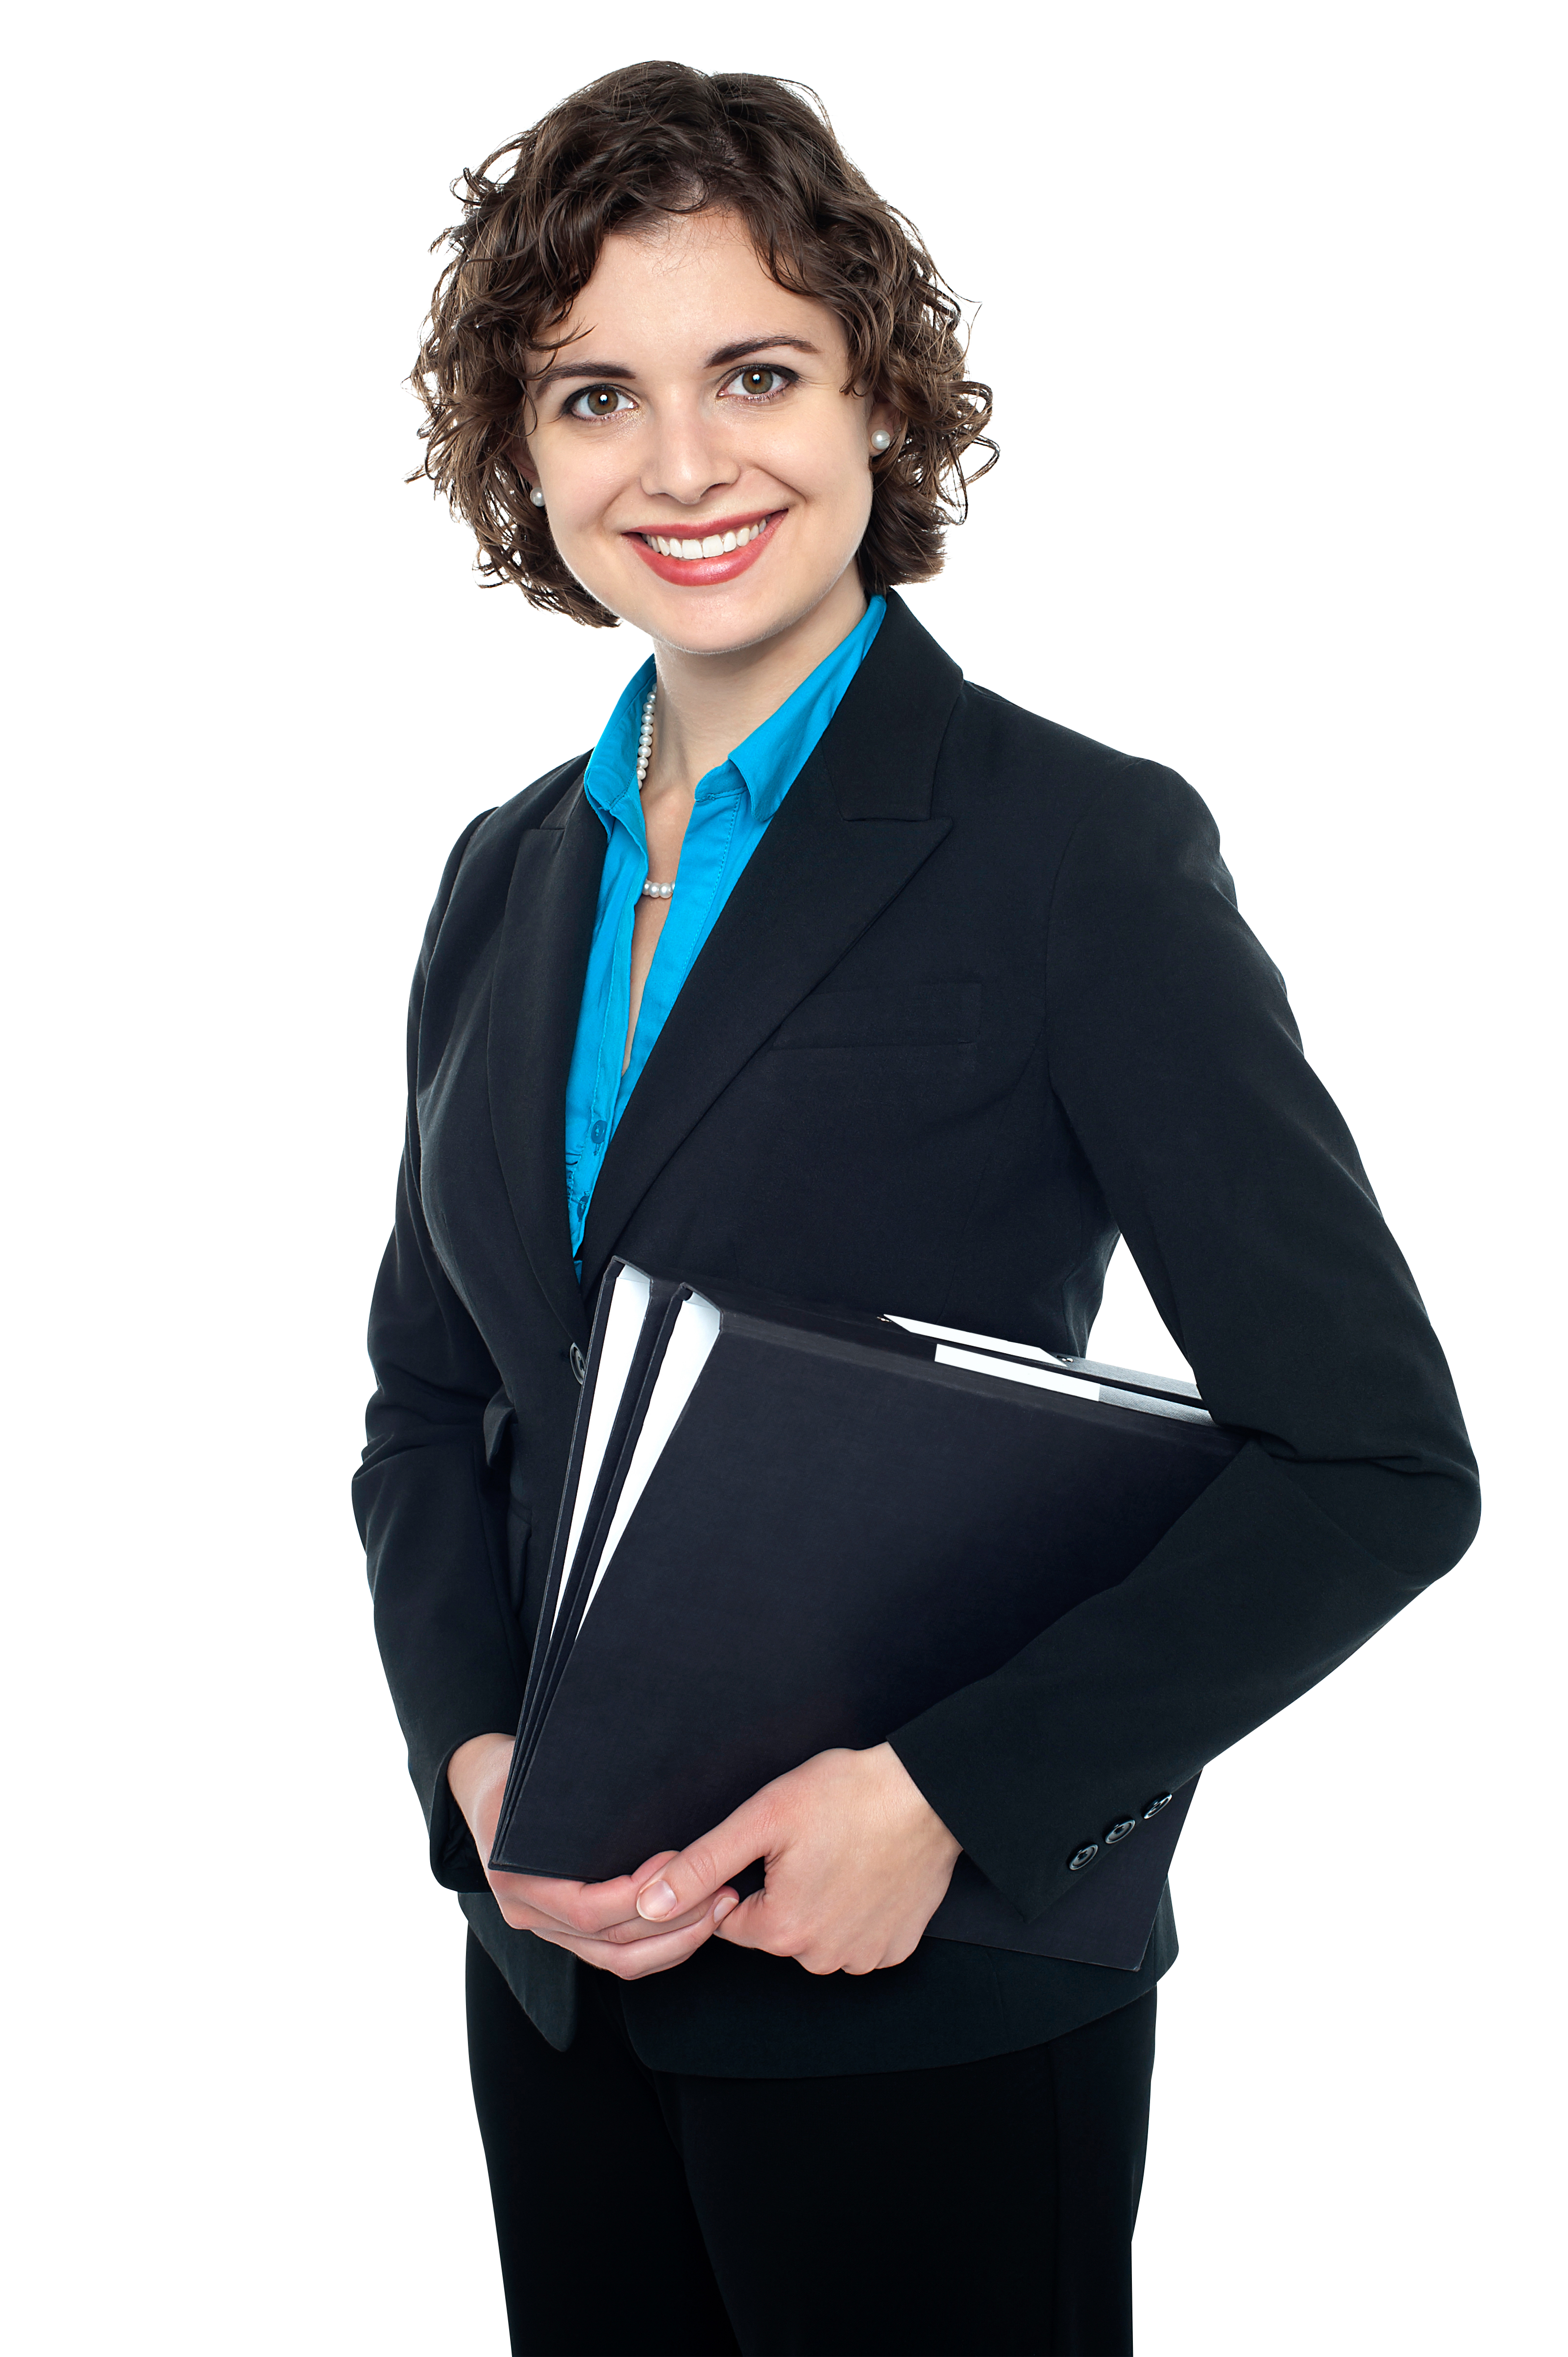 Business Women PNG Image